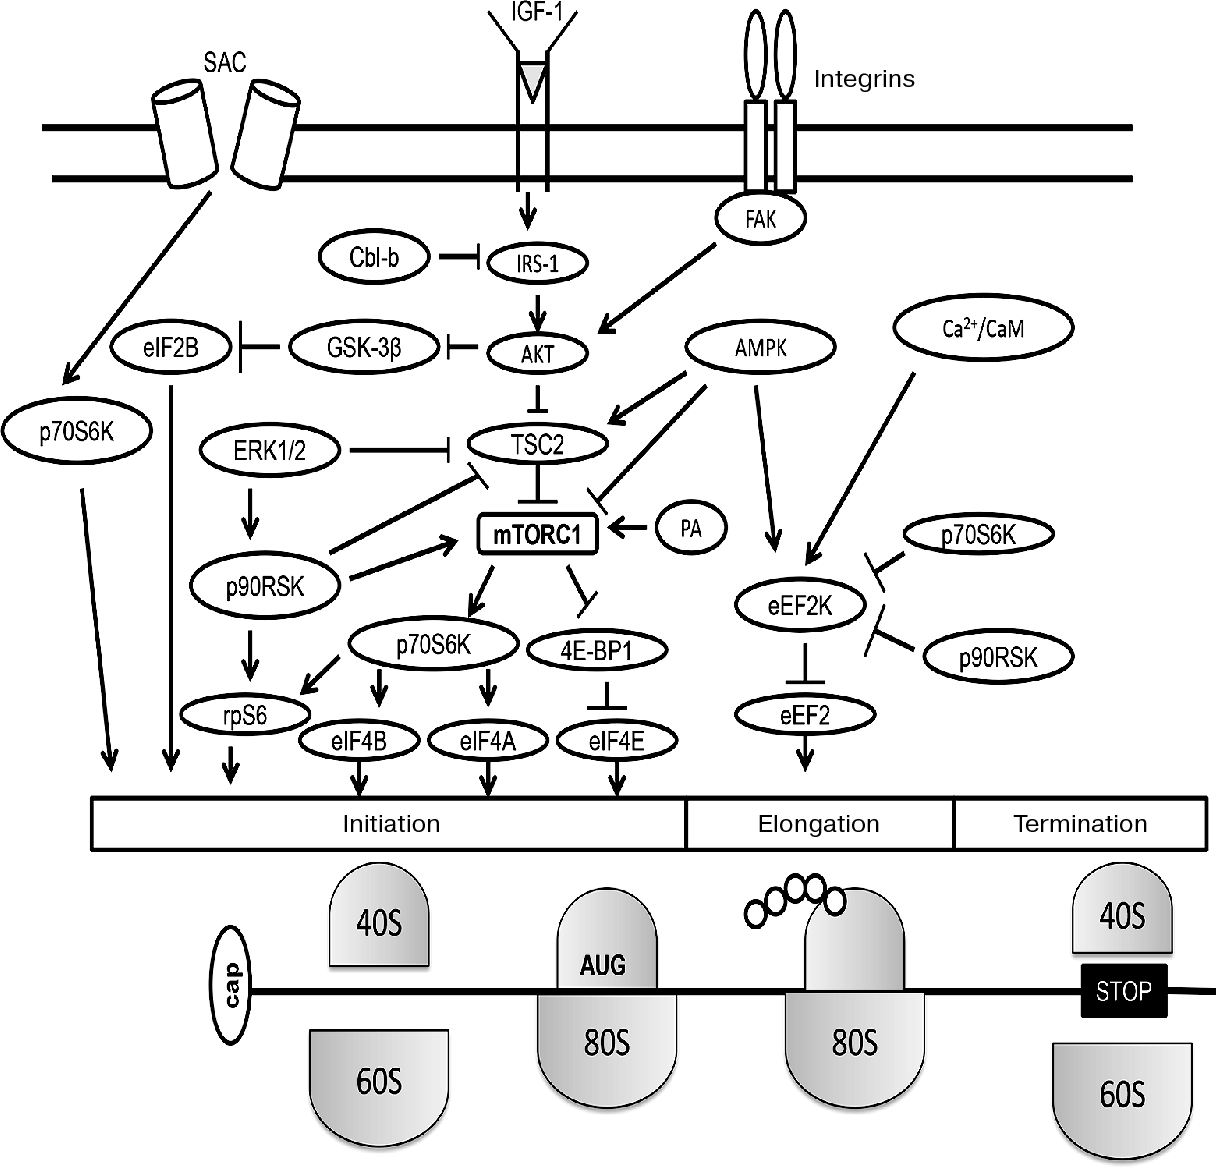 3 Figure1 1 regulation of protein synthesis in inactivated skeletal muscle